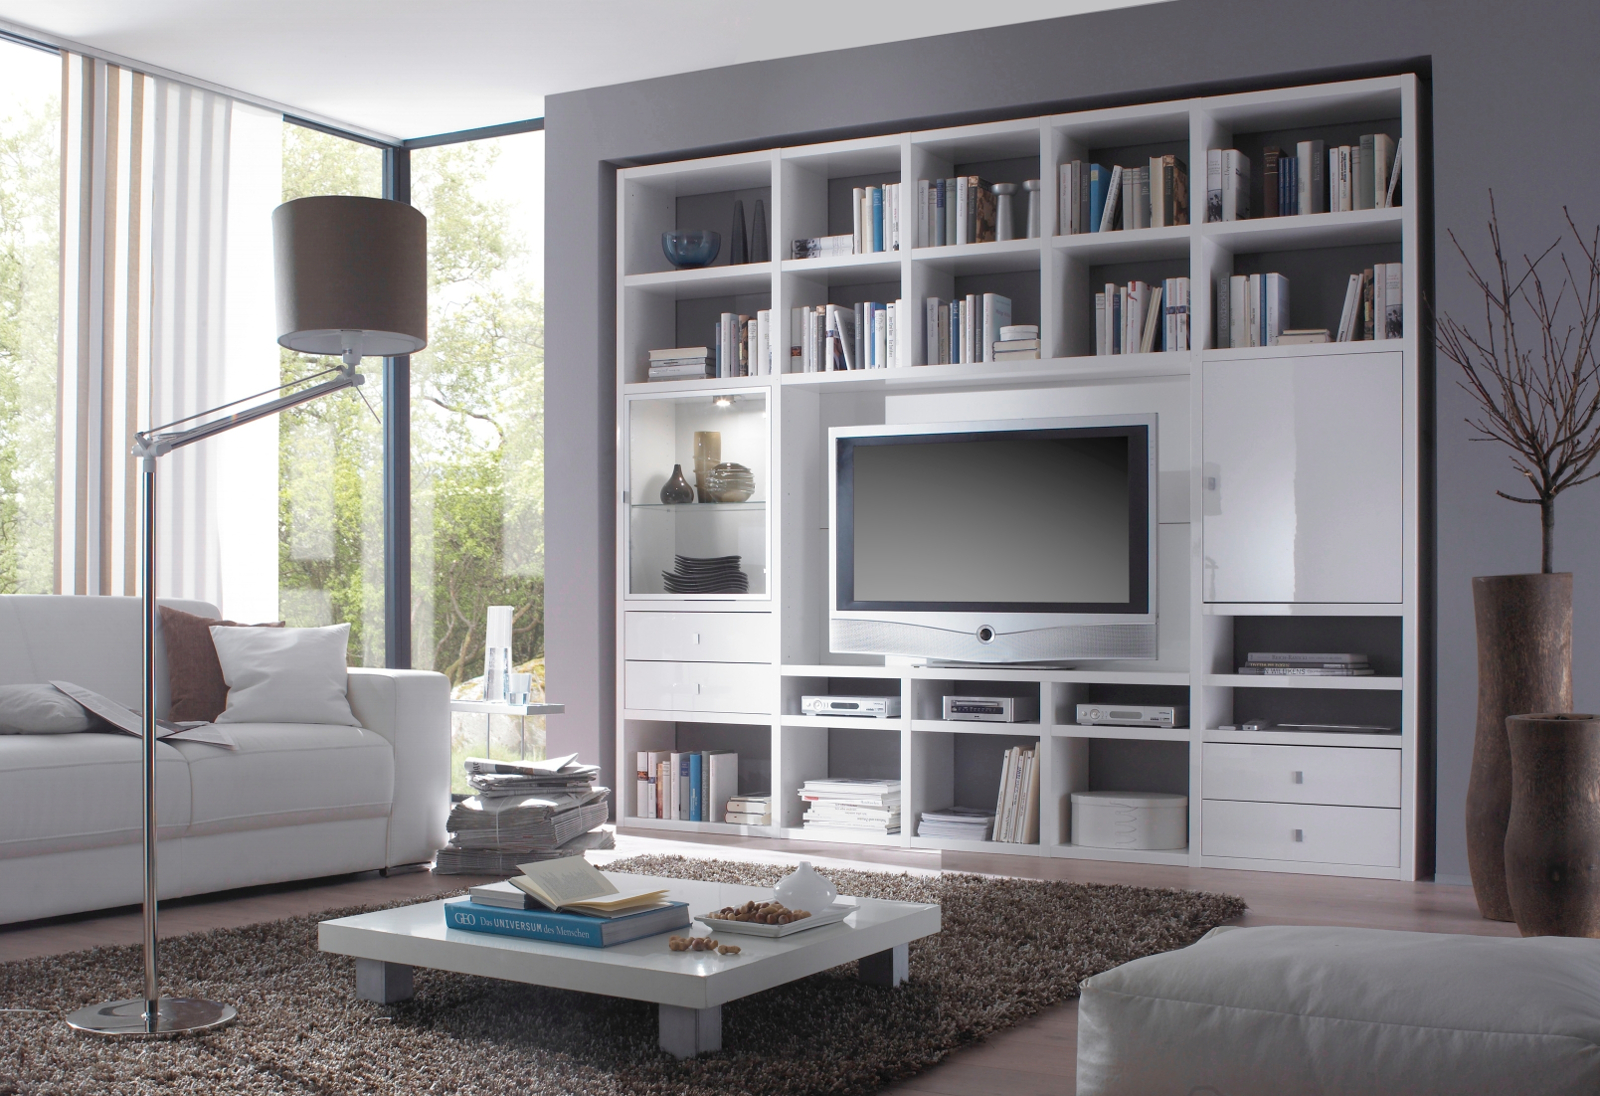 wohnwand b cherwand lack hochglanz wei. Black Bedroom Furniture Sets. Home Design Ideas